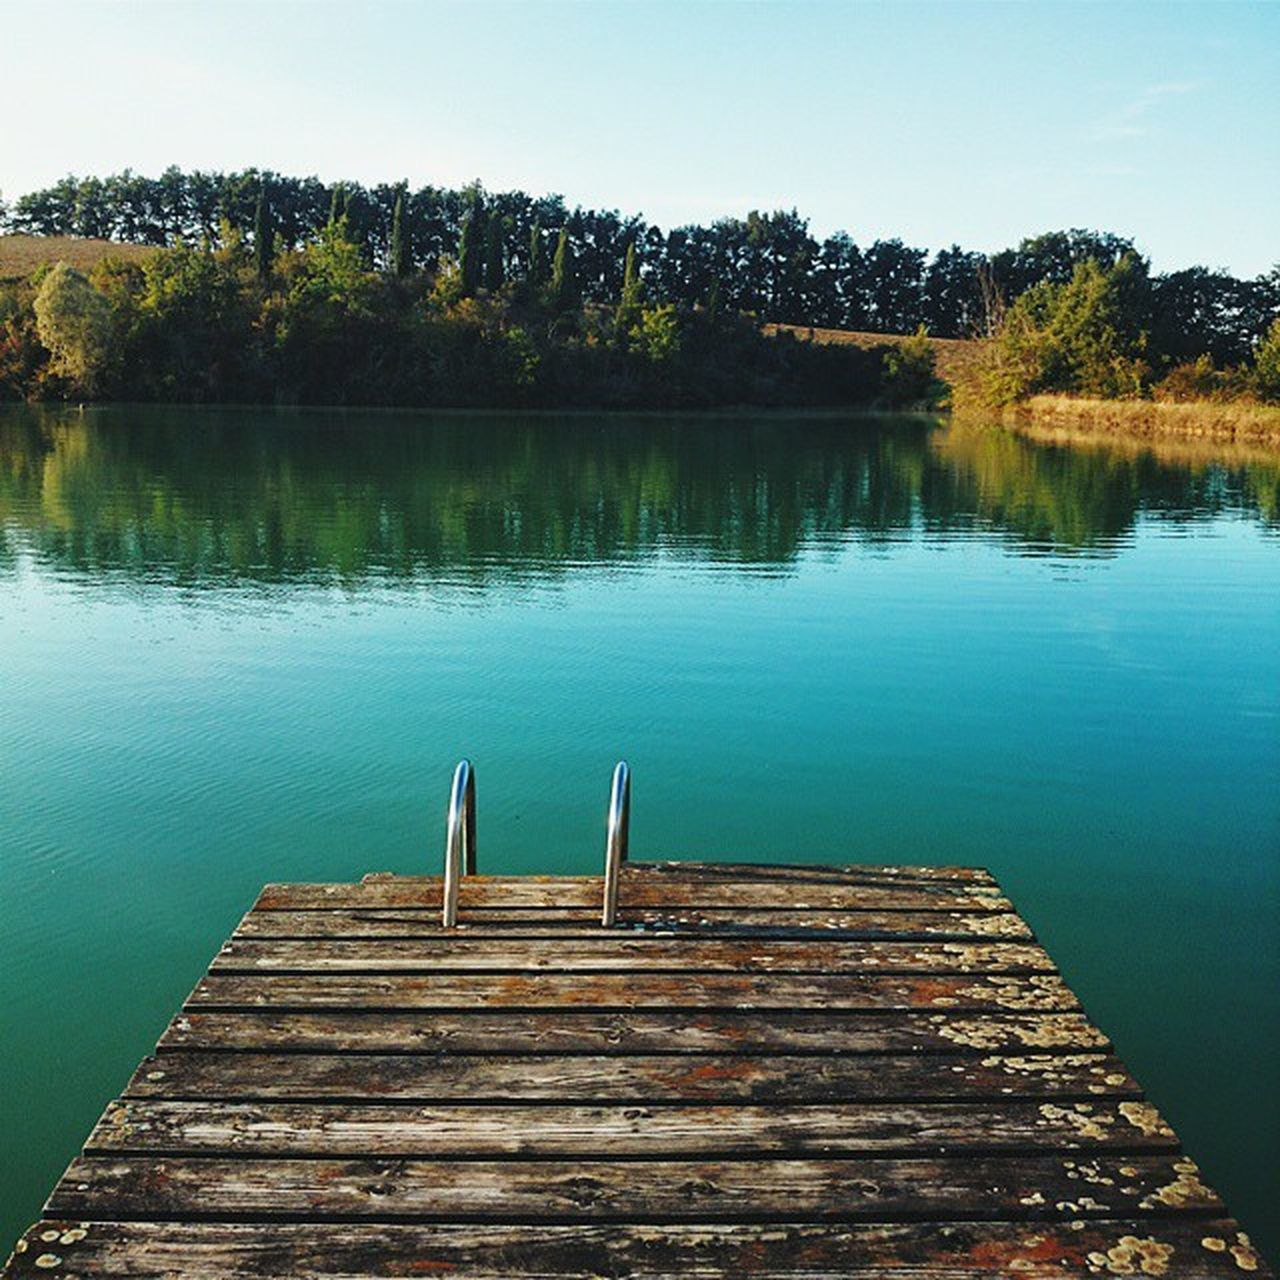 water, tree, tranquil scene, nature, tranquility, lake, beauty in nature, outdoors, scenics, wood - material, day, no people, jetty, diving platform, sky